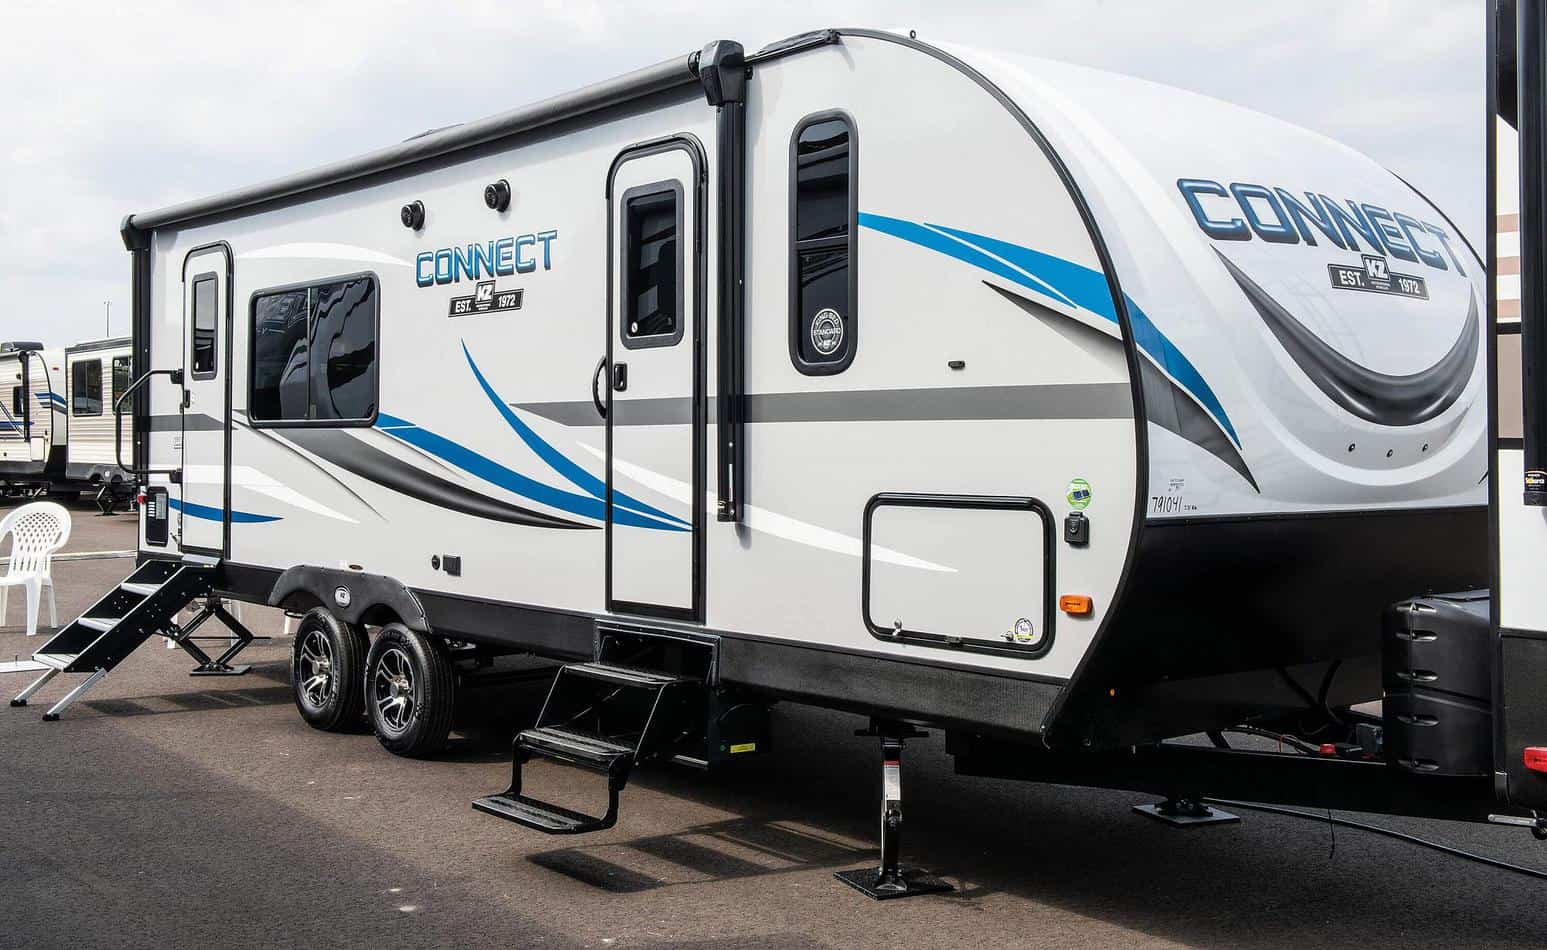 The 2020 KZ Connect offers an RV office area - Photo: KZ